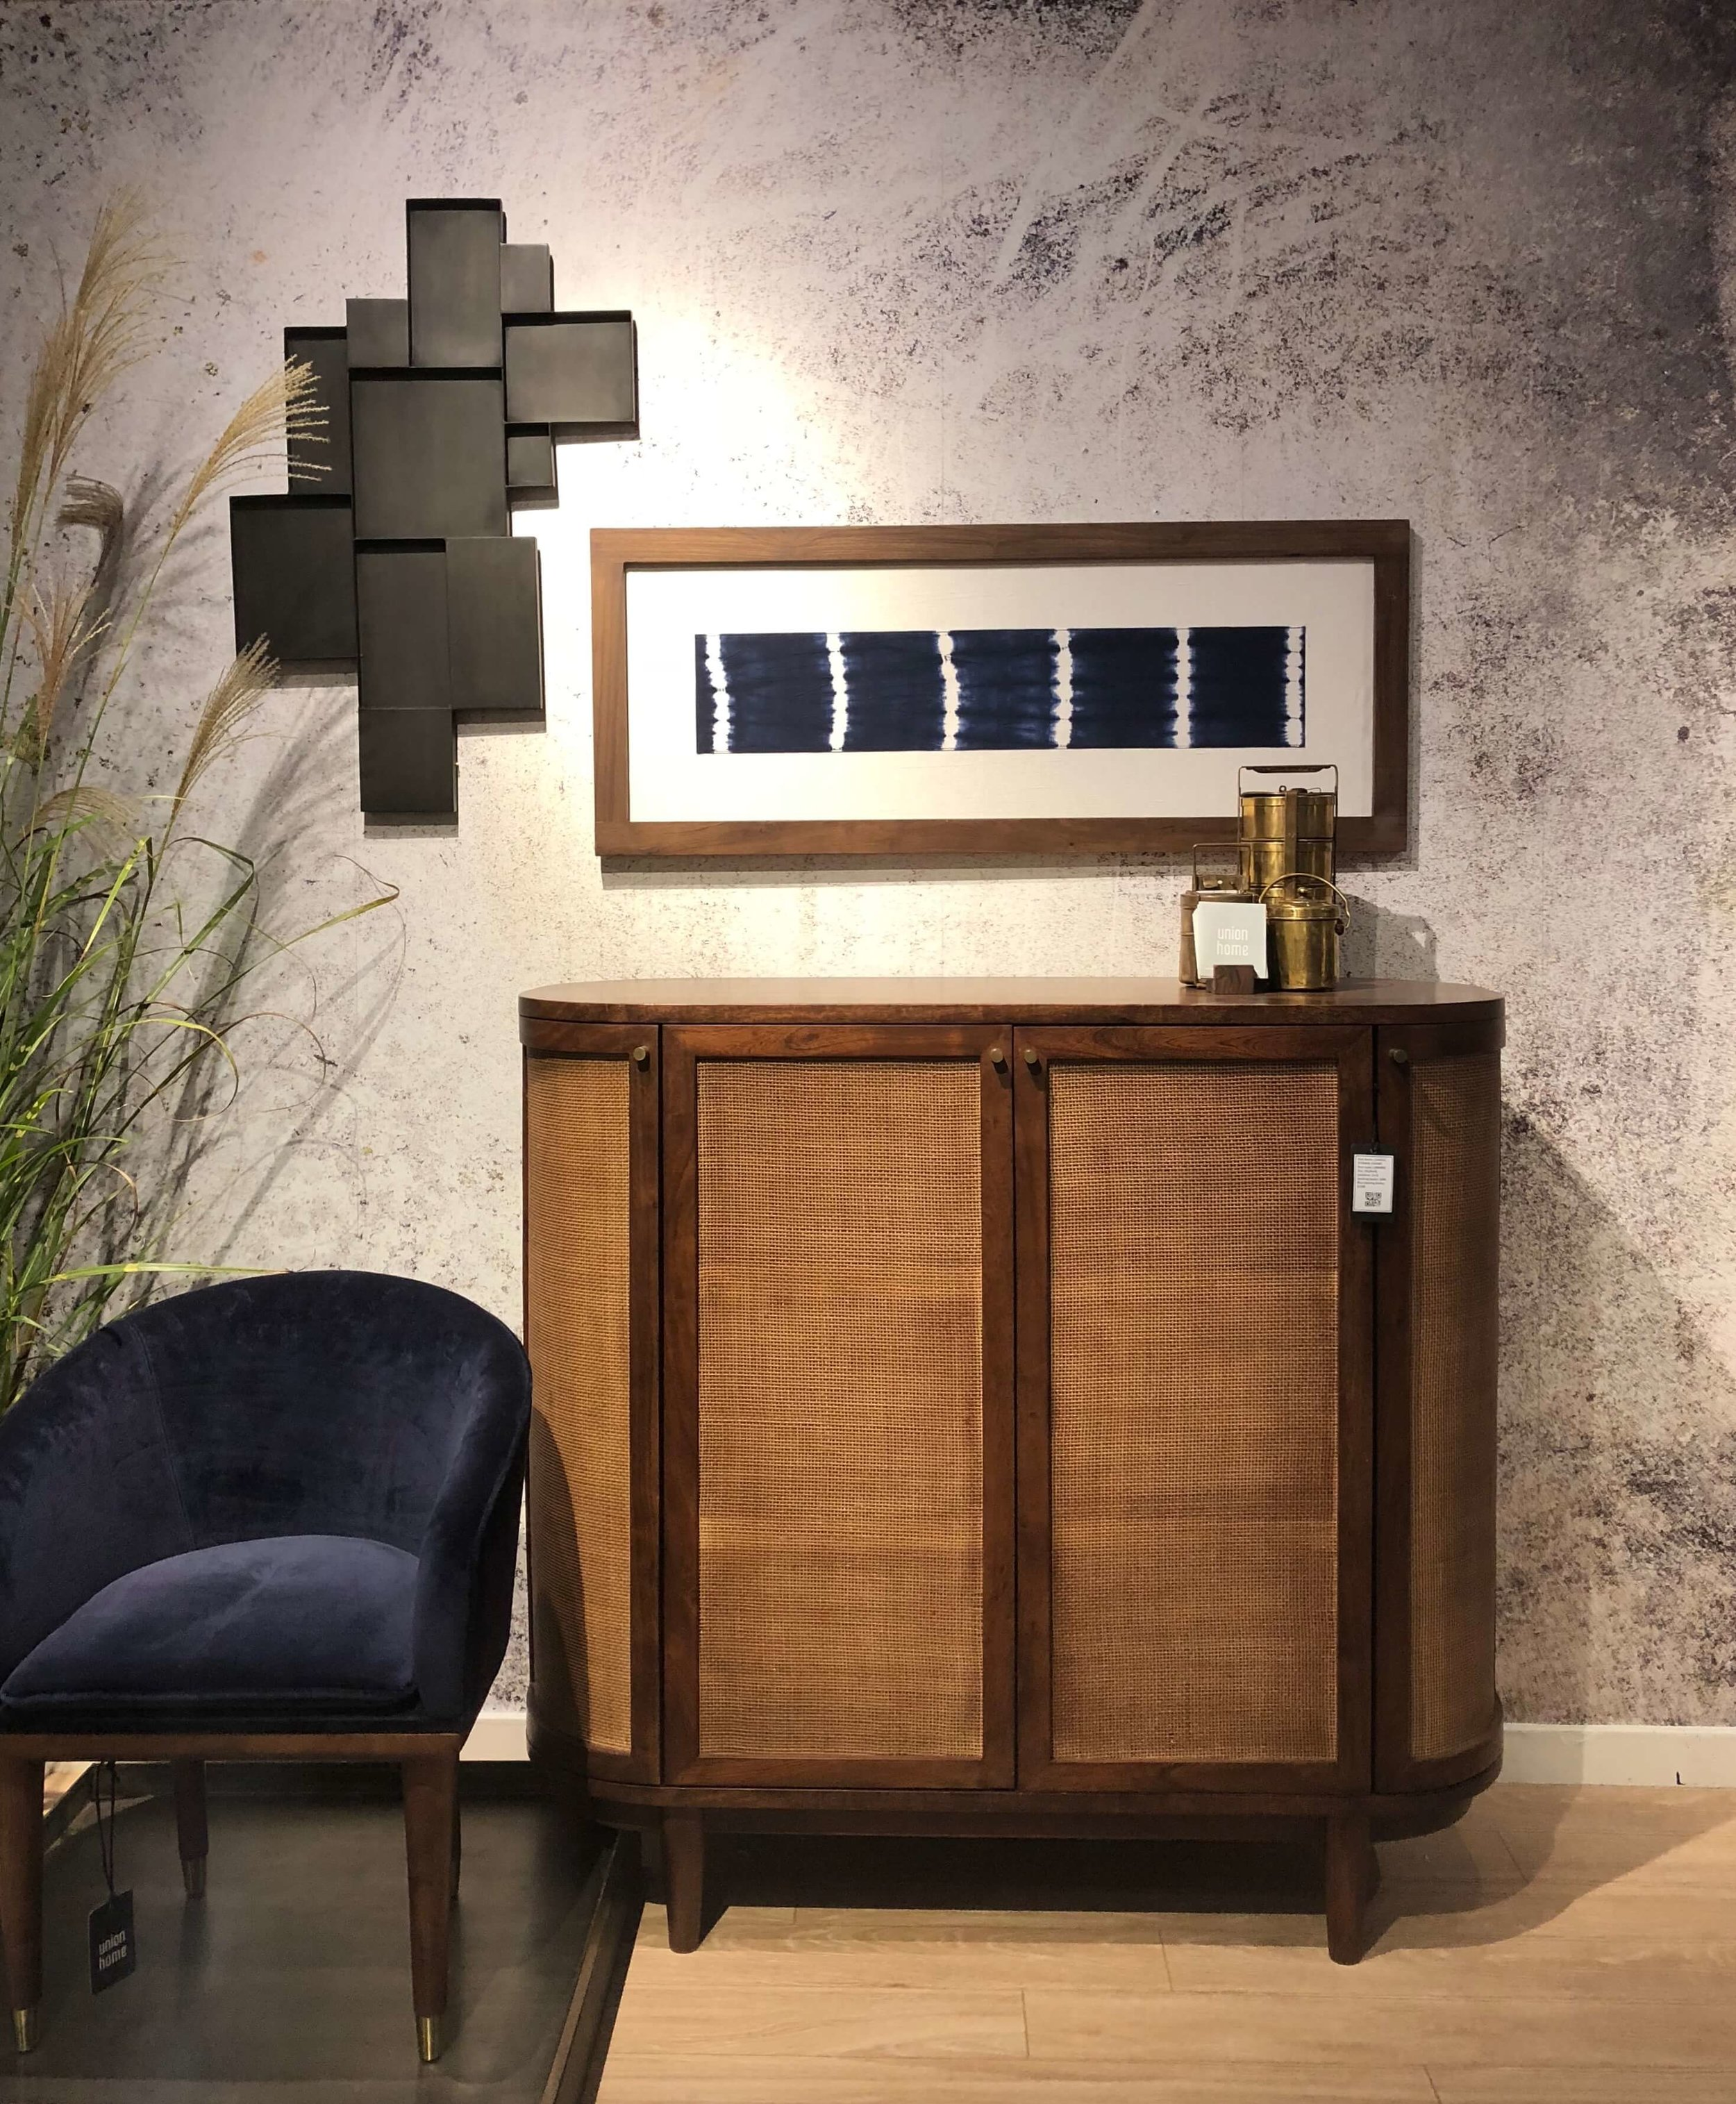 This warm wood console from Union Home incorporates some nice textured panels and look….a tub chair!